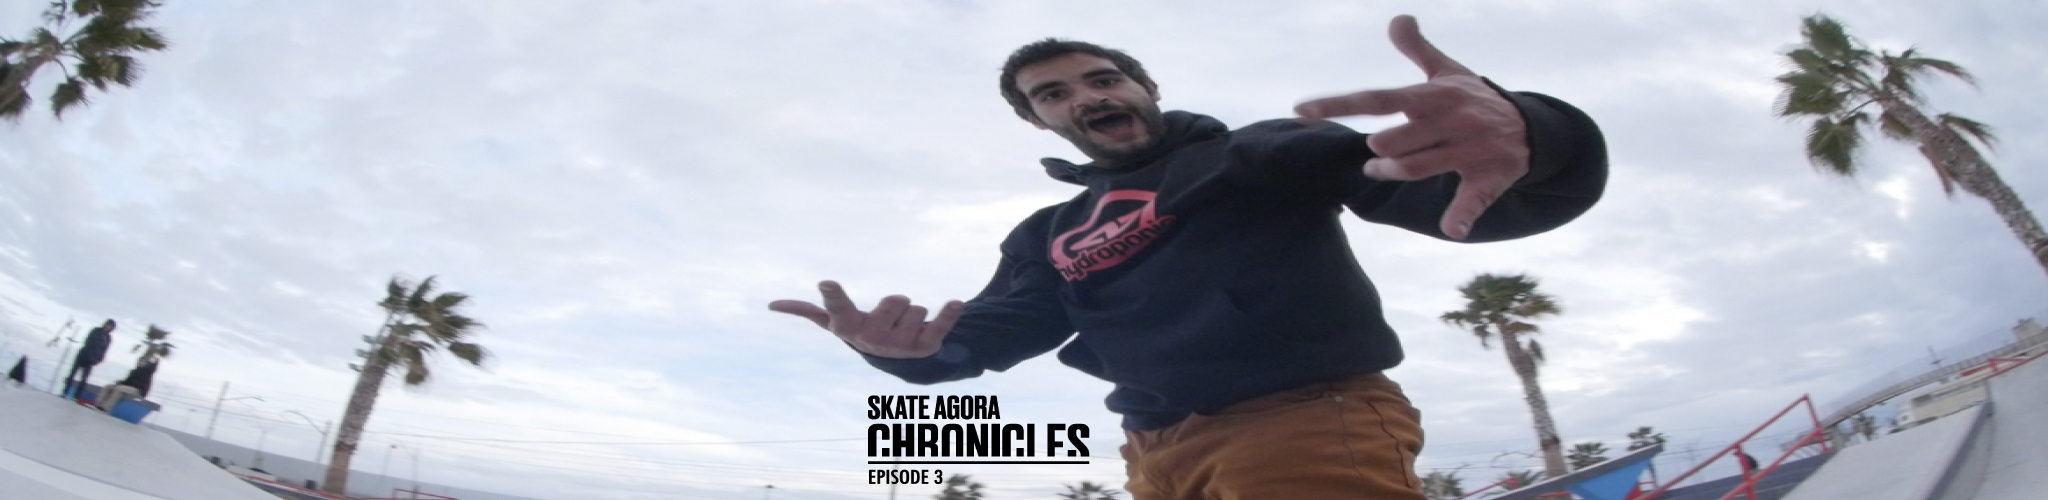 Skate Agora Chronicles Ep.3